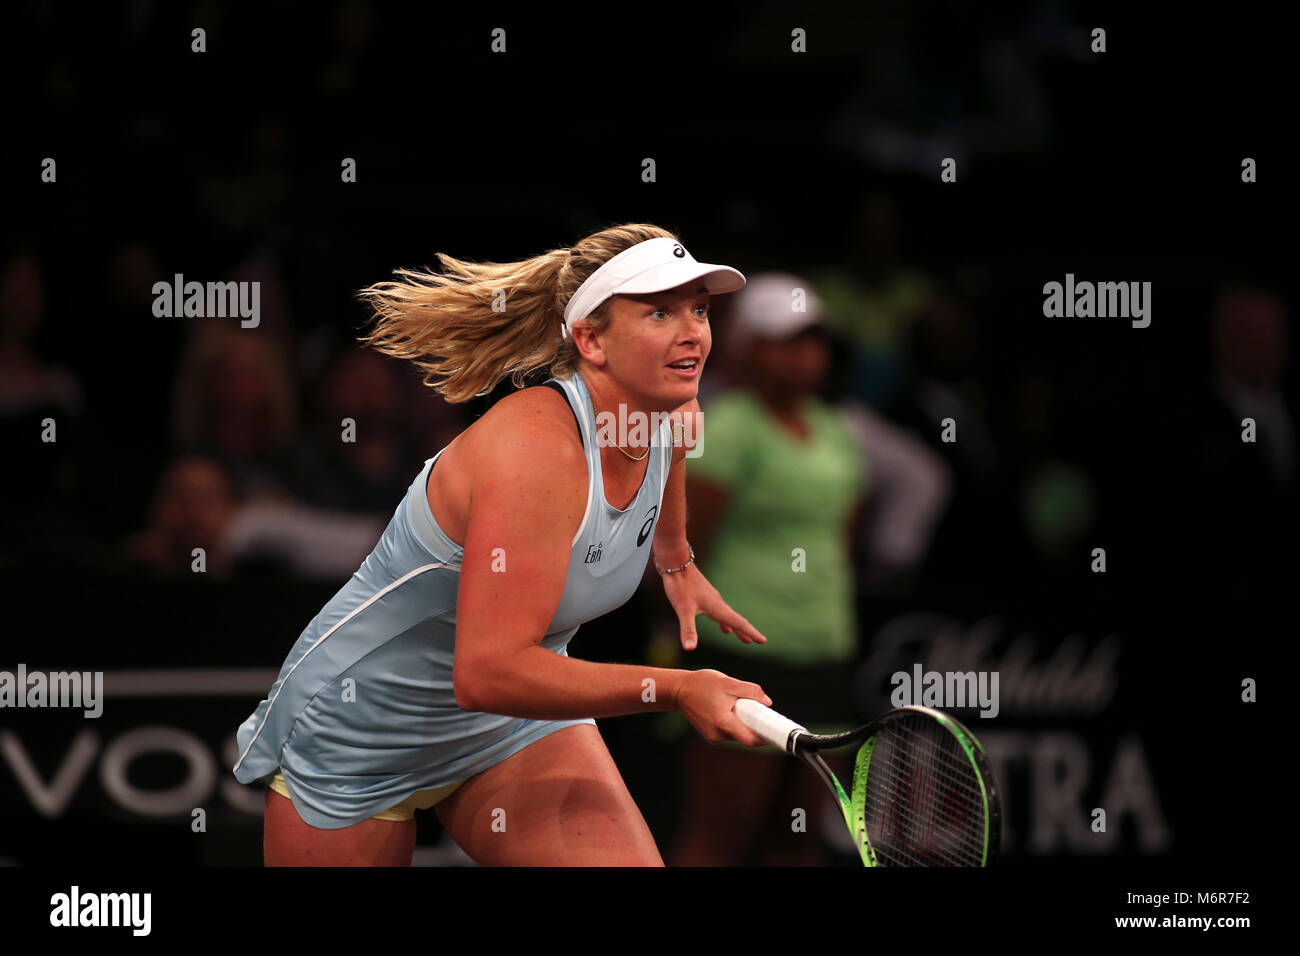 New York, USA. 5th March, 2018. CoCo Vandeweghe of the United States in action during the Tie Break Tens tennis - Stock Image